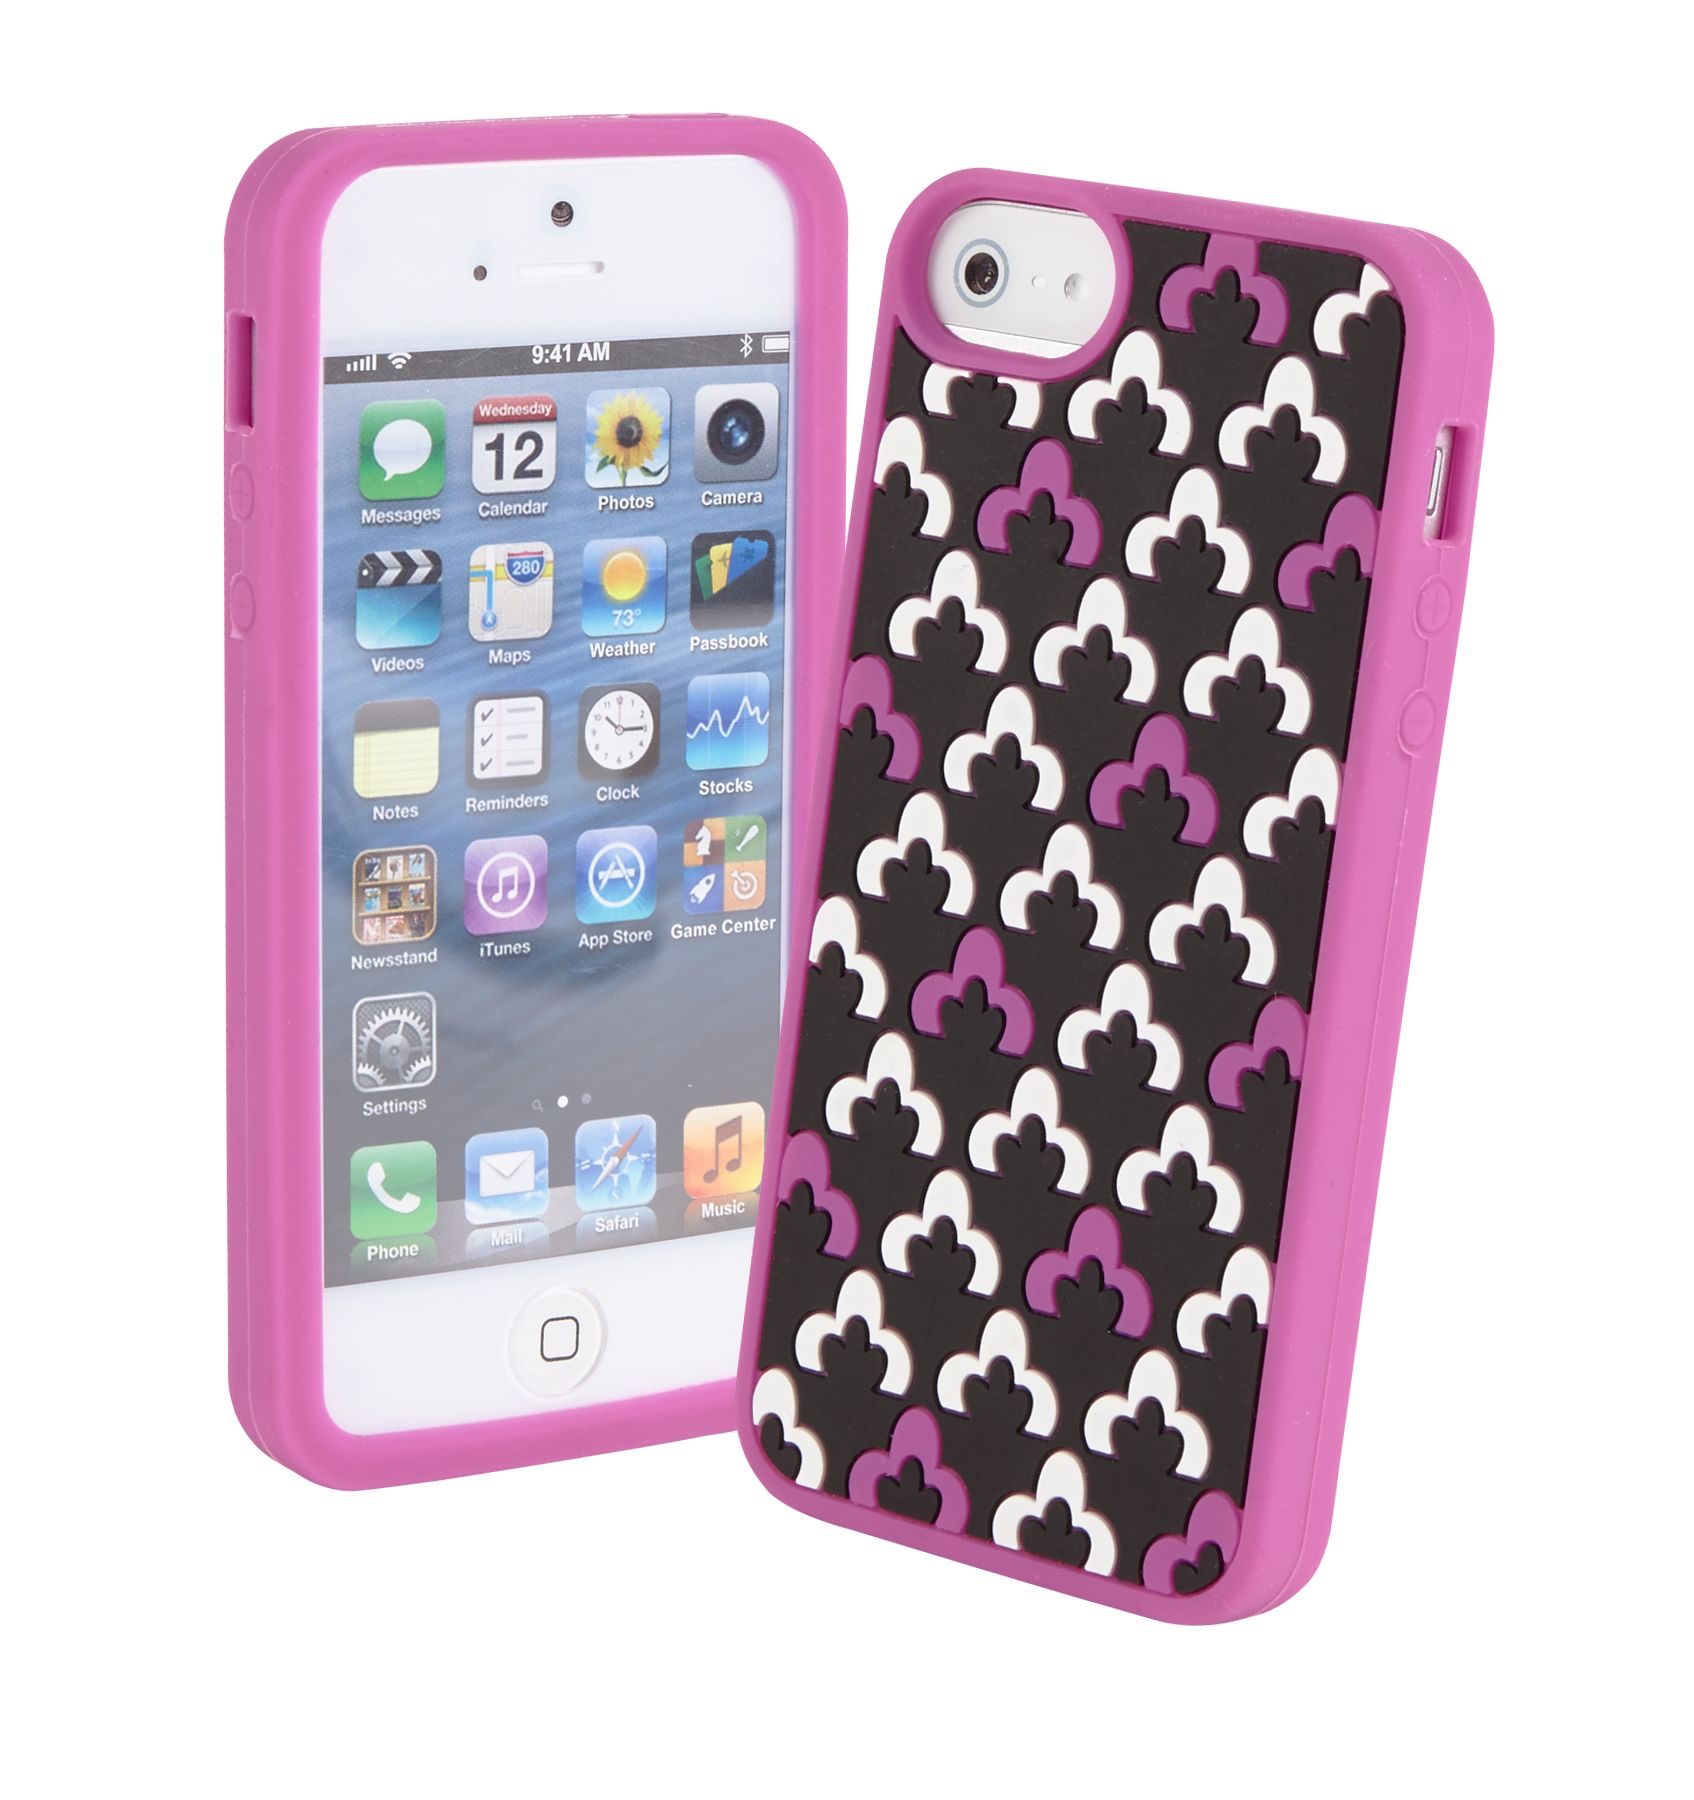 vera bradley iphone 5 case vera bradley soft frame phone for iphone 5 ebay 18147